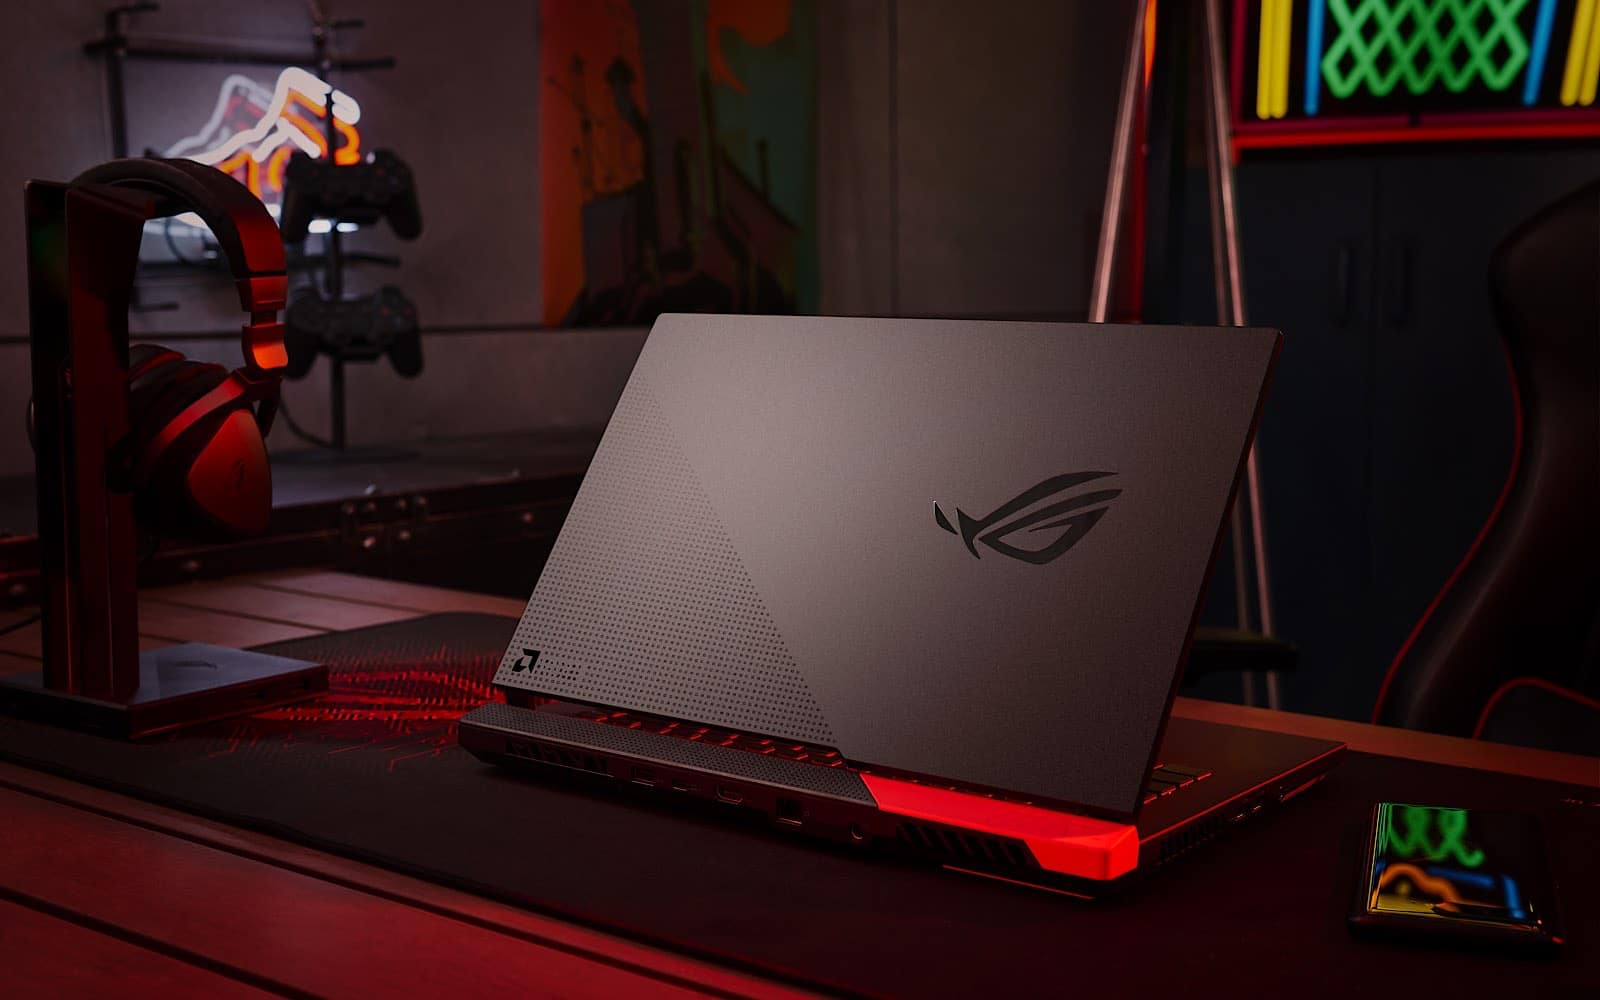 Asus's ROG Advantage Edition laptop with Radeon 6000 series graphics inside